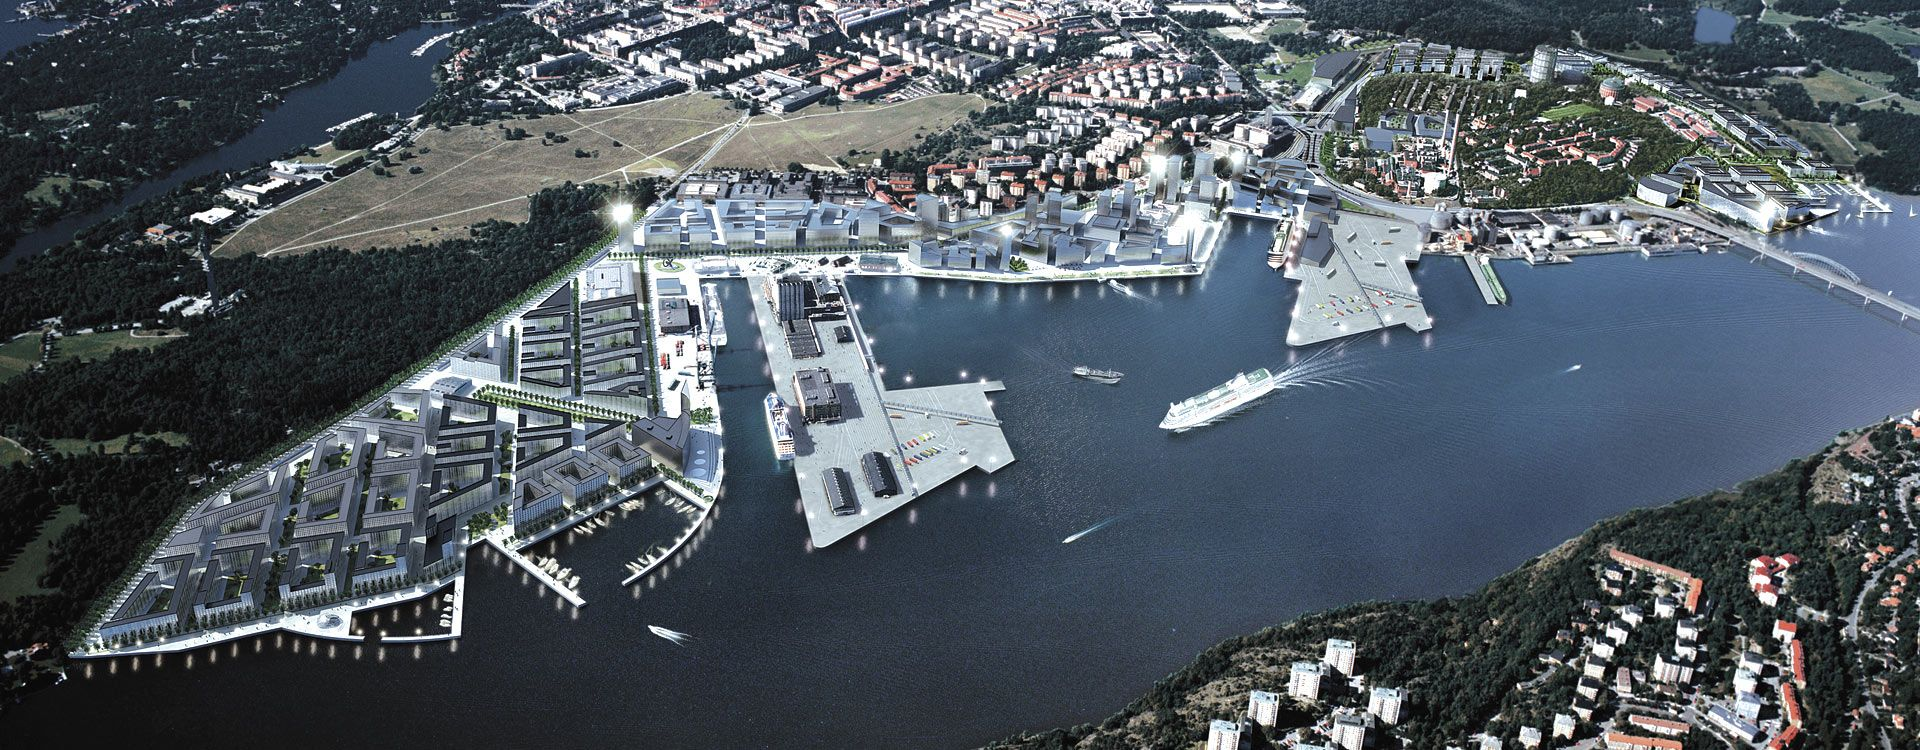 Stockholm-Royal-Seaport-Maritime-Urban-Development